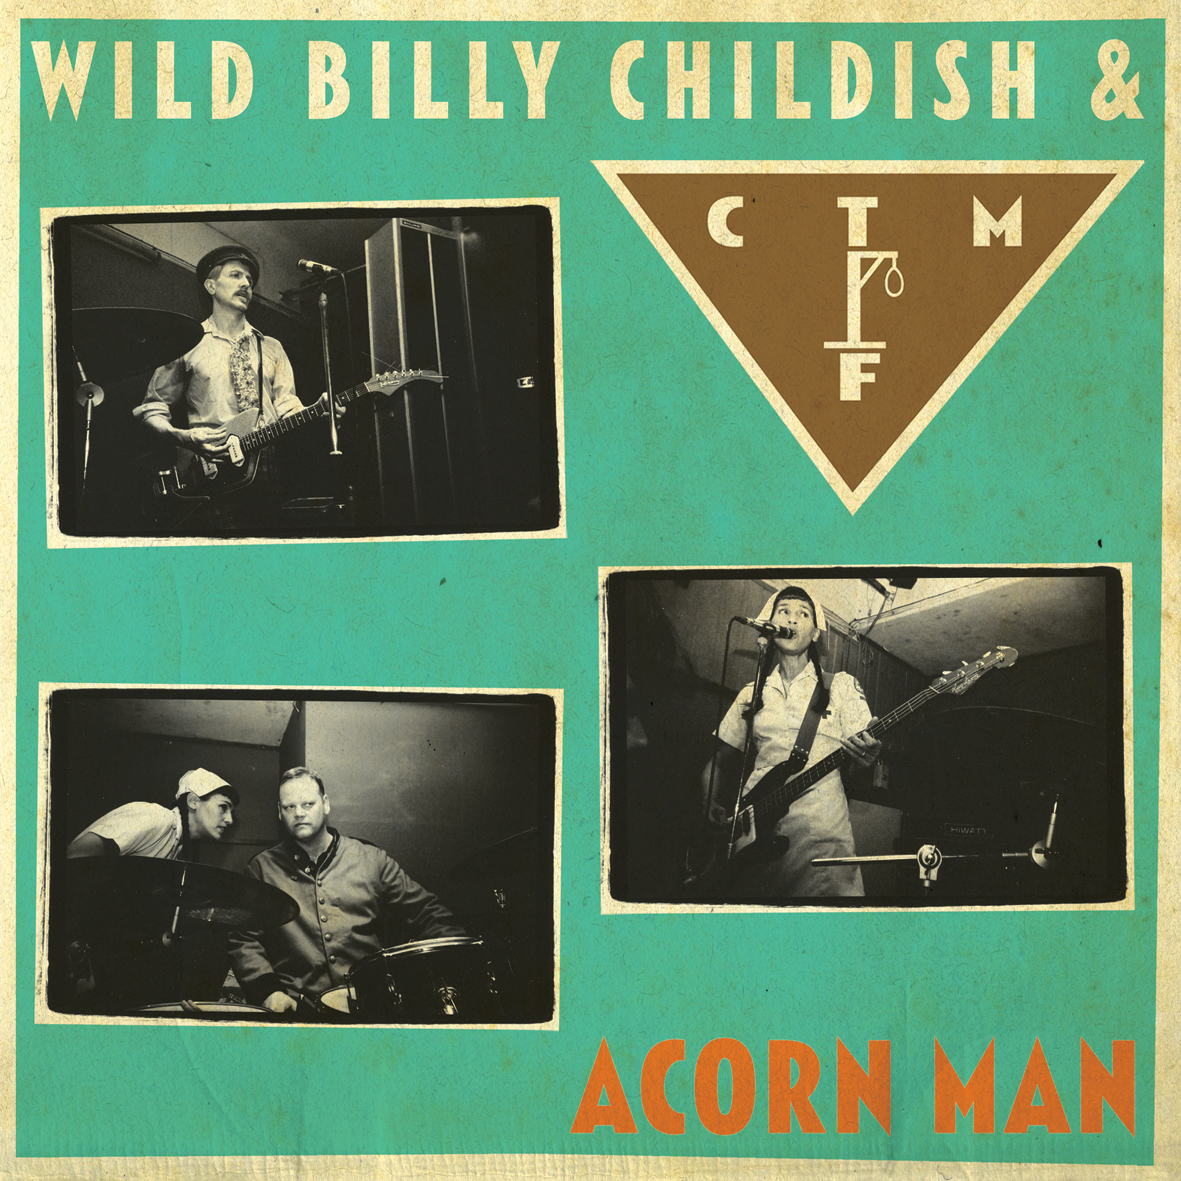 WILD BILLY CHILDISH & CTMF Acorn Man CD